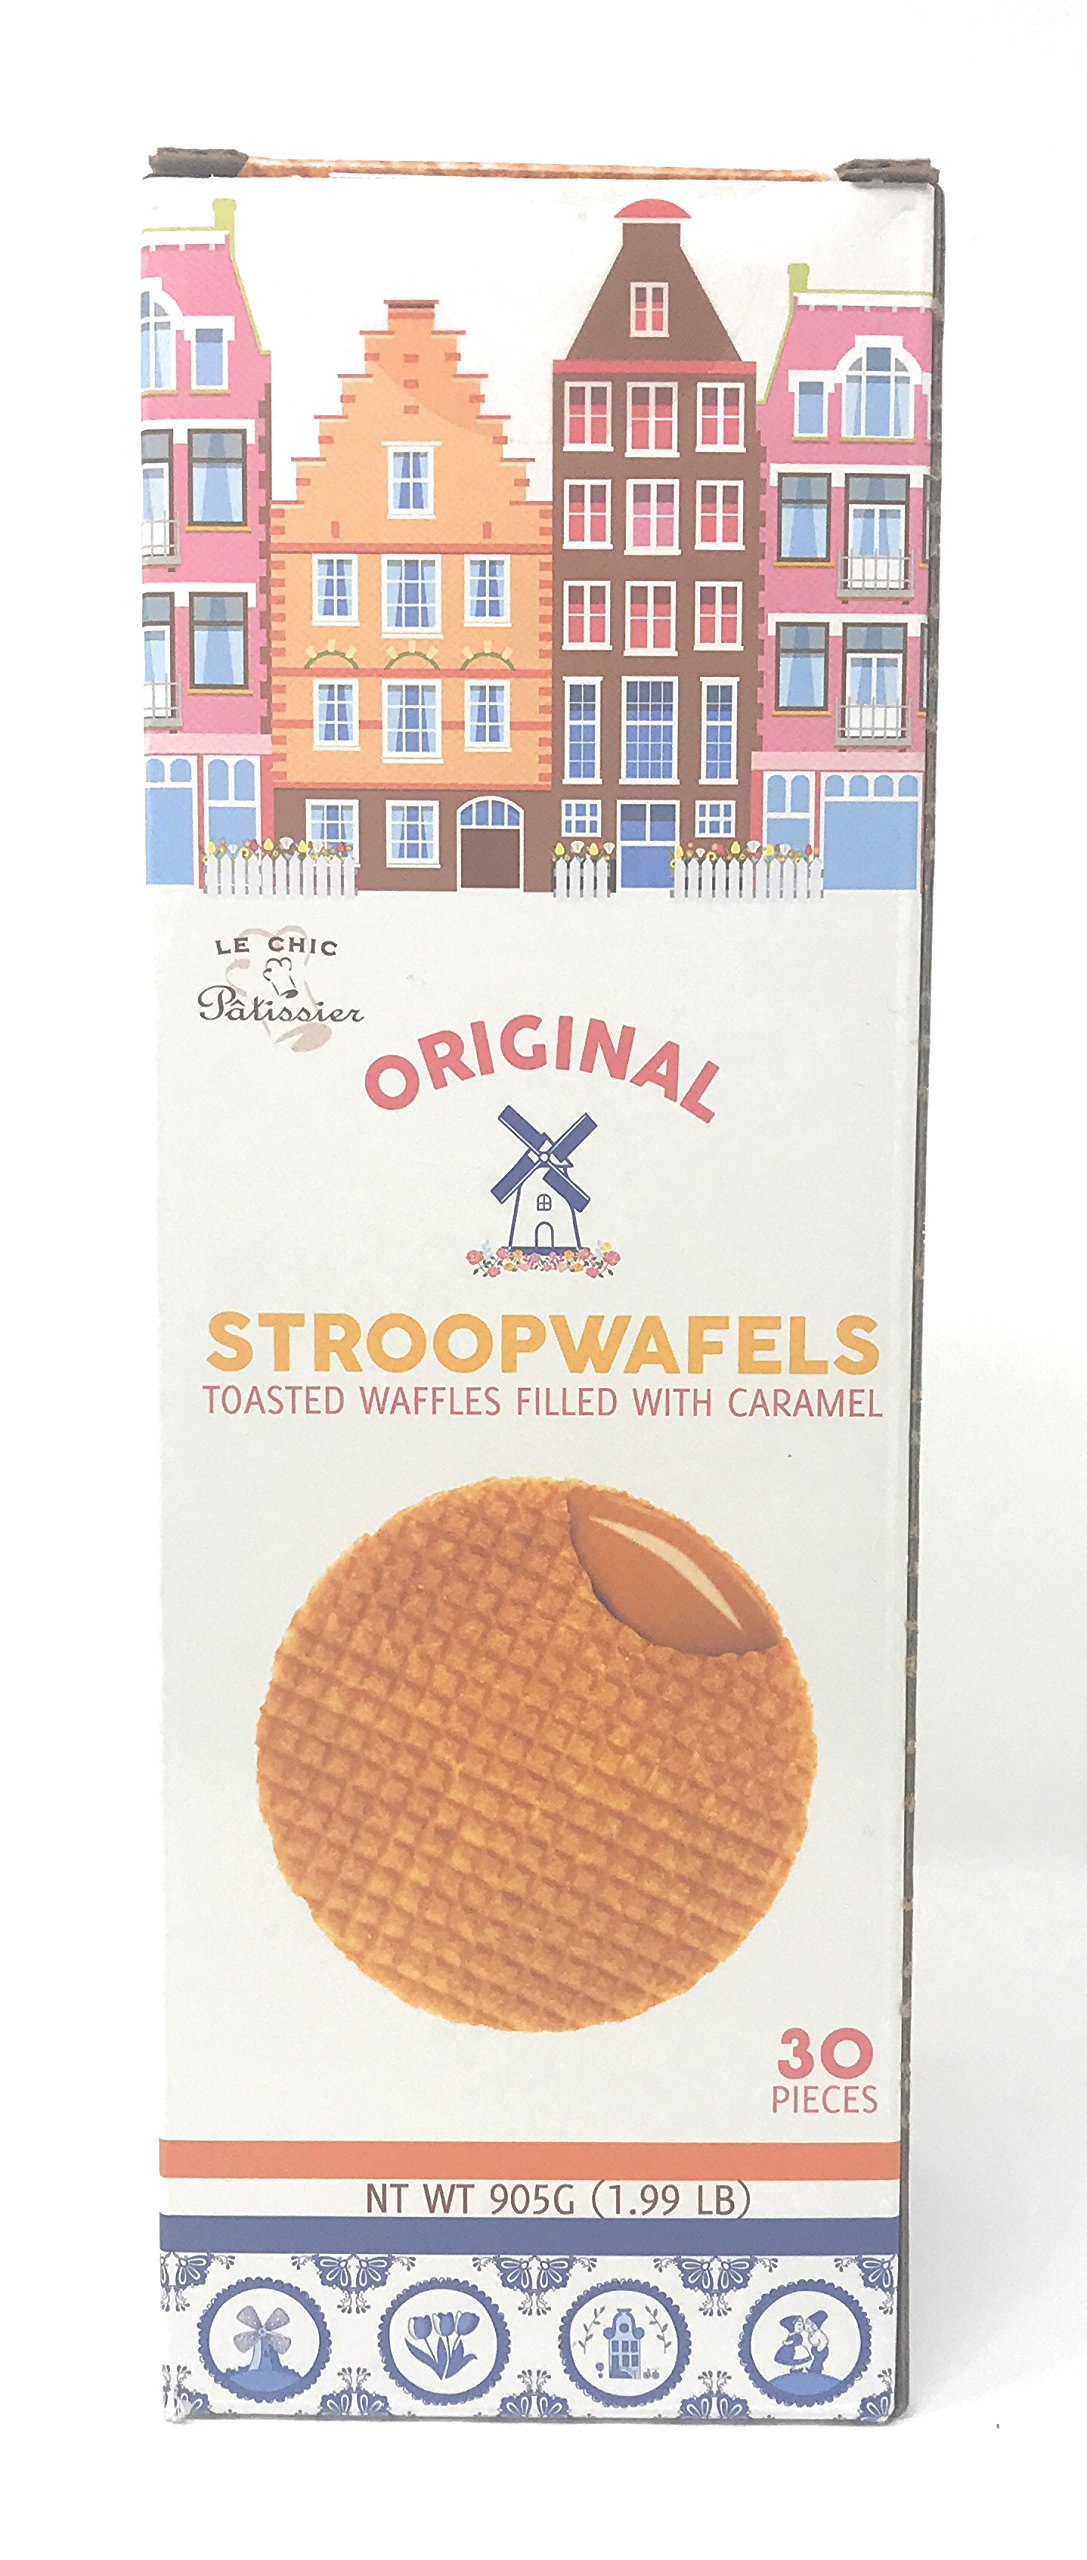 Original Stroopwafels- Toasted Waffles filled with Caramel by LE CHIC Patissier